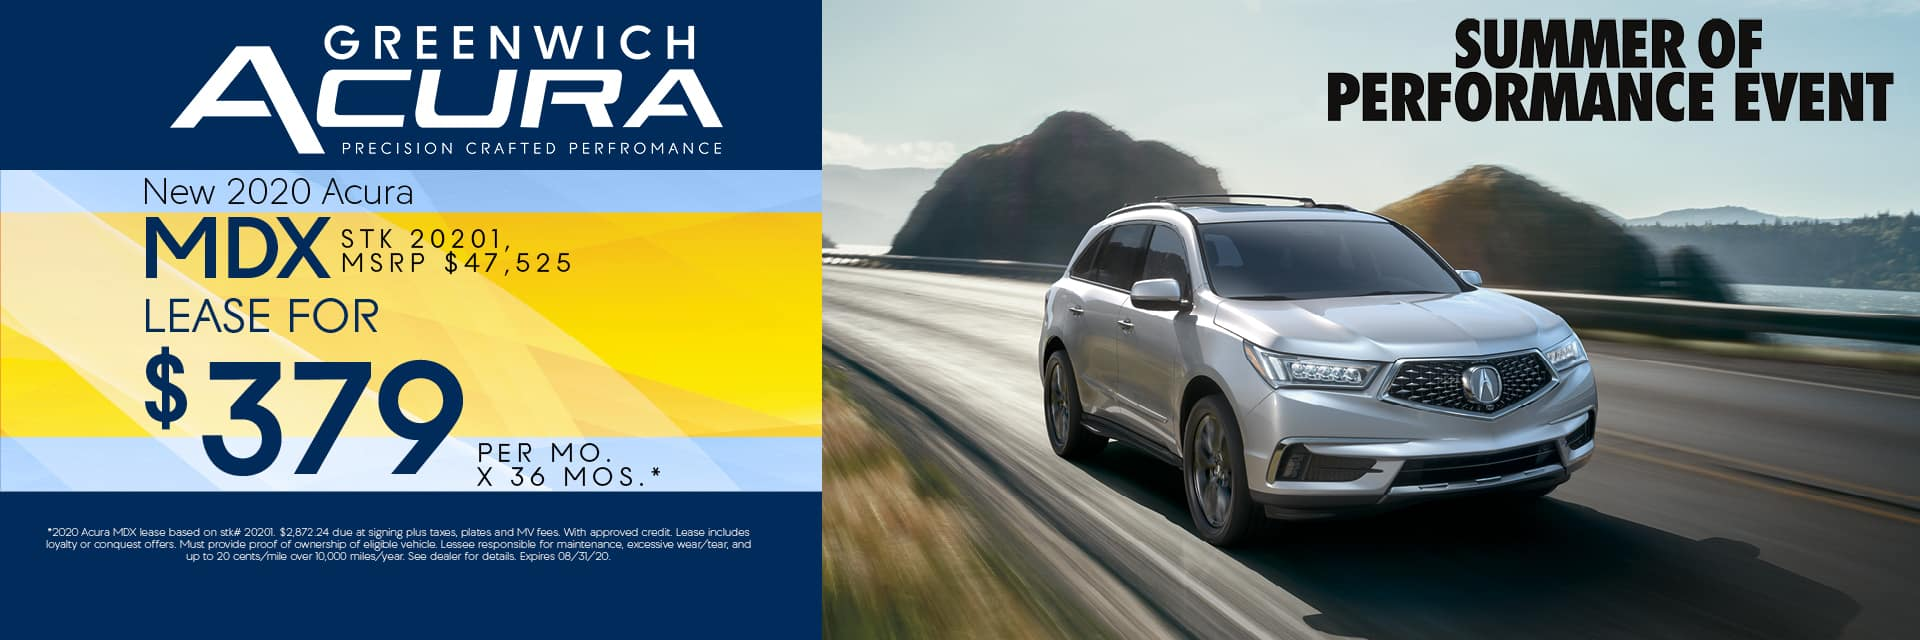 New 2020 Acura MDX Lease for $379 for 36mos. | Greenwich, CT